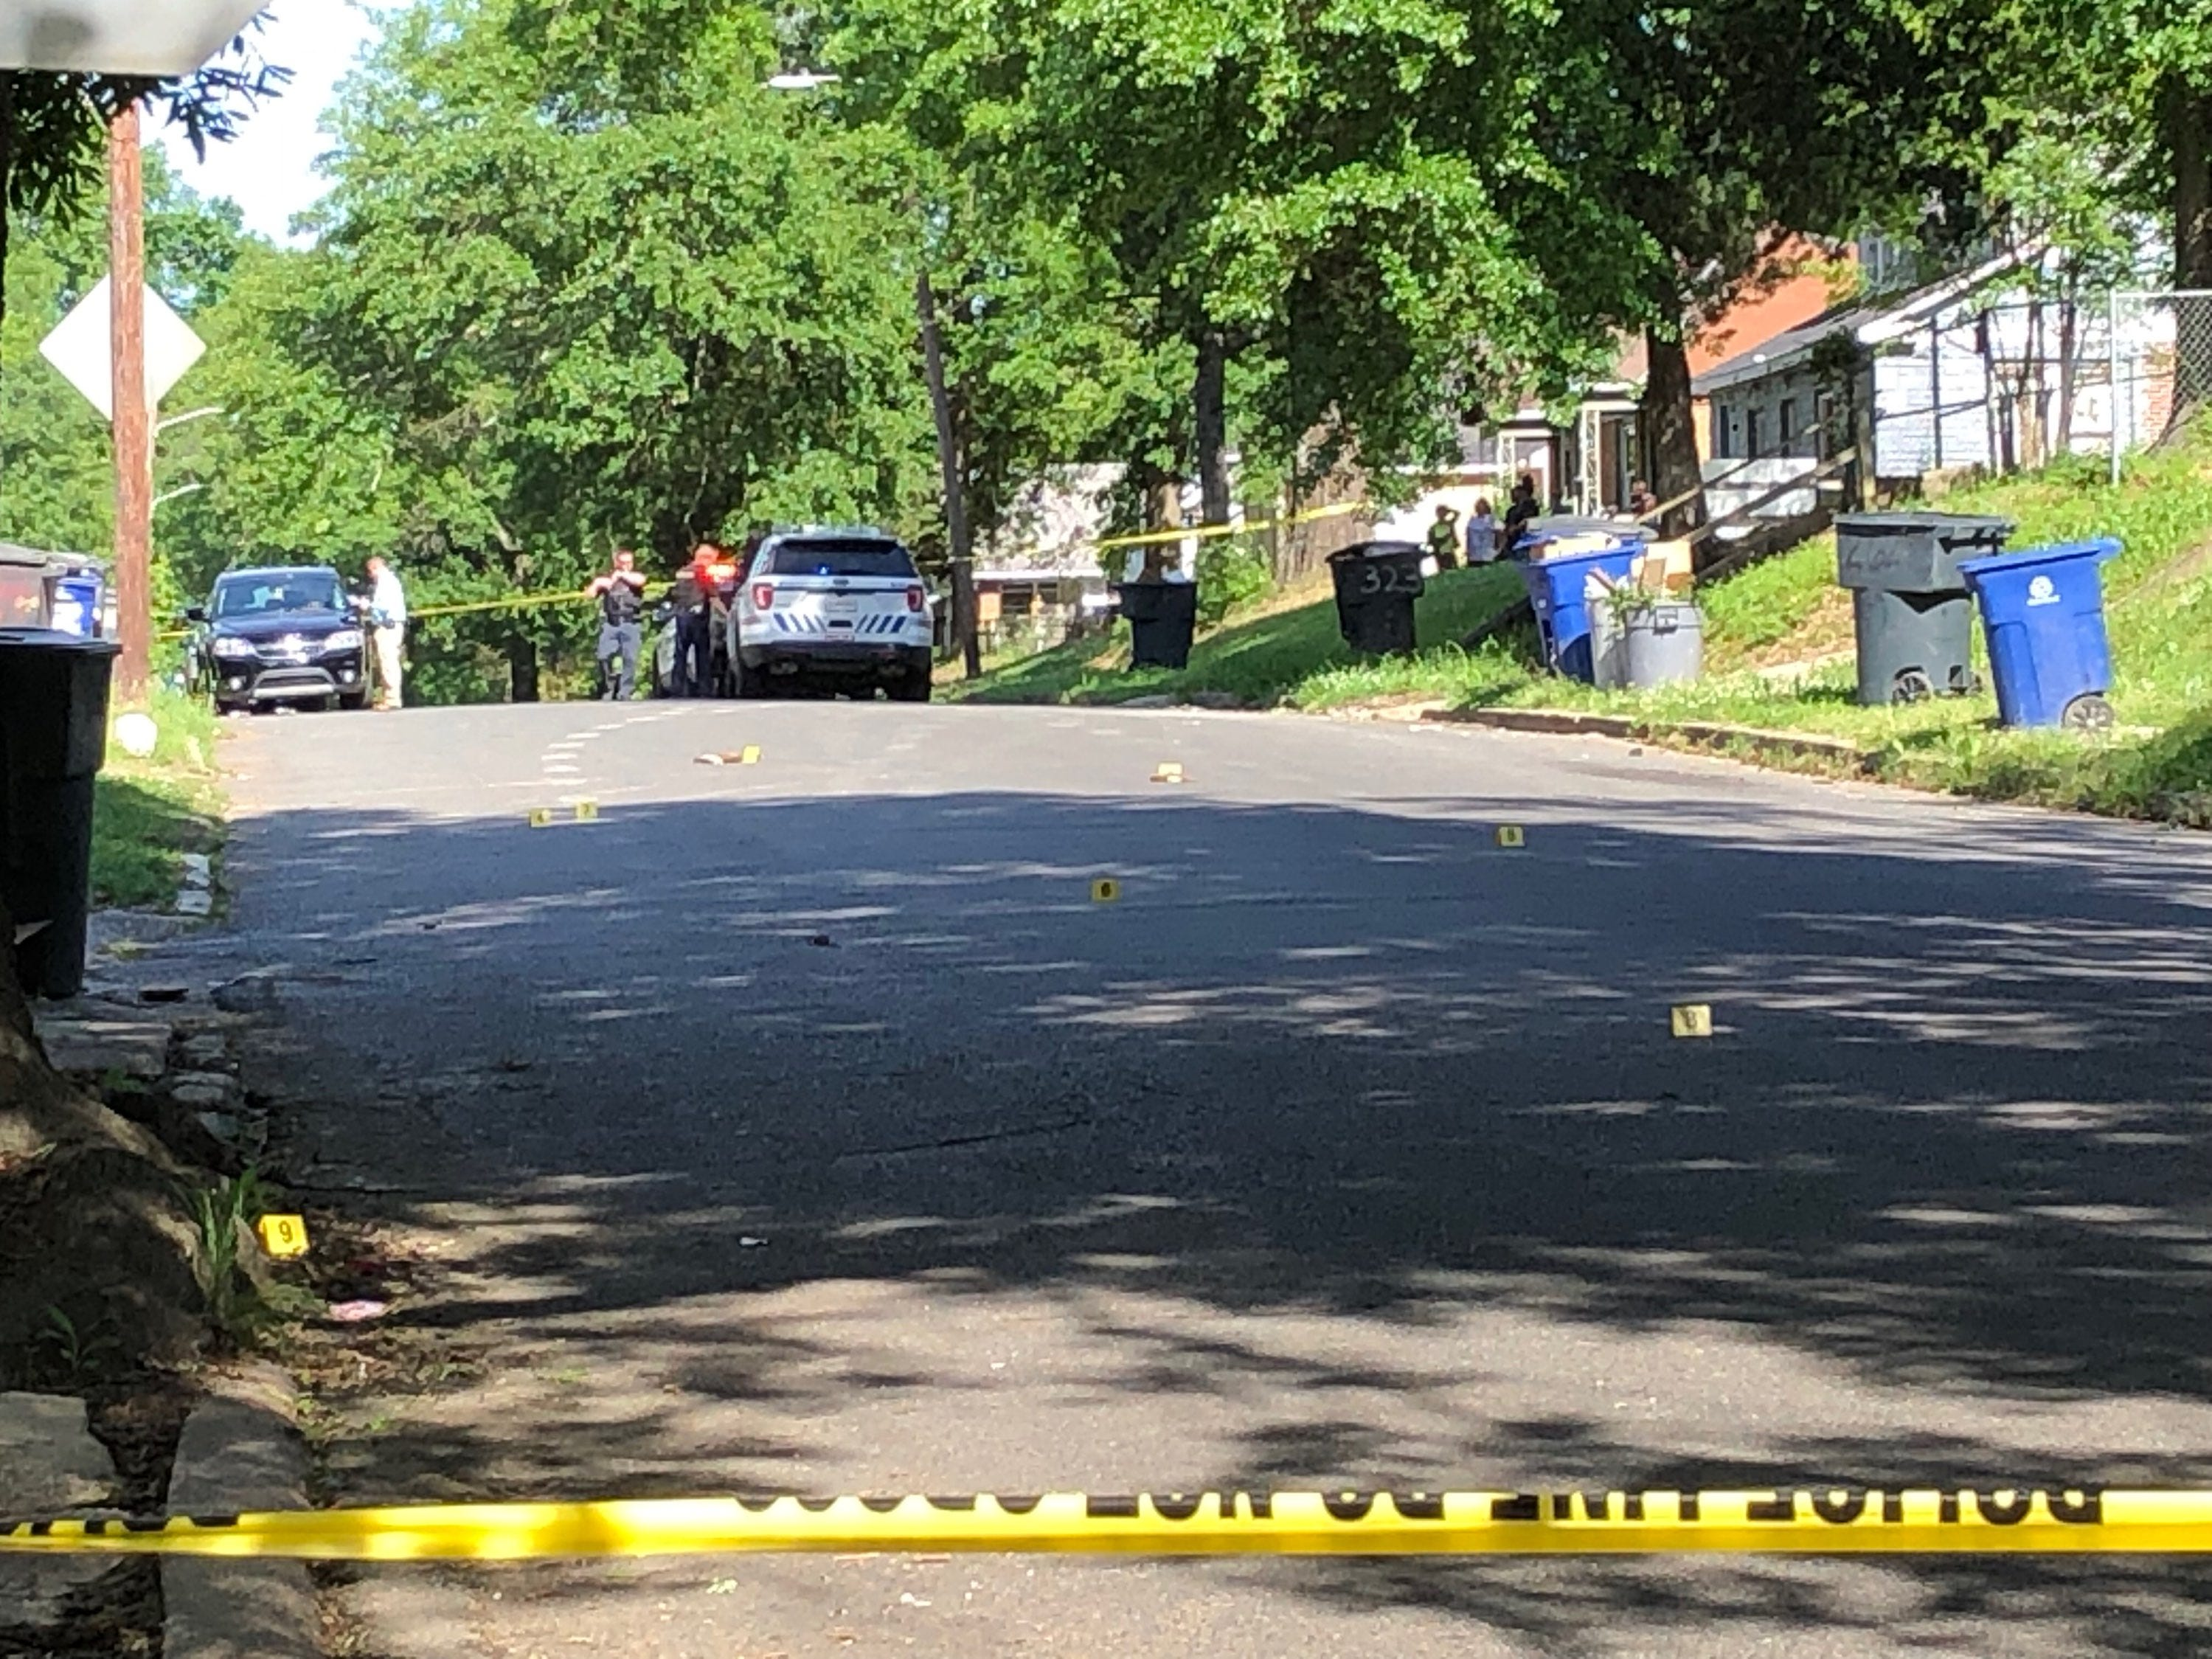 Two injured in Highland shooting